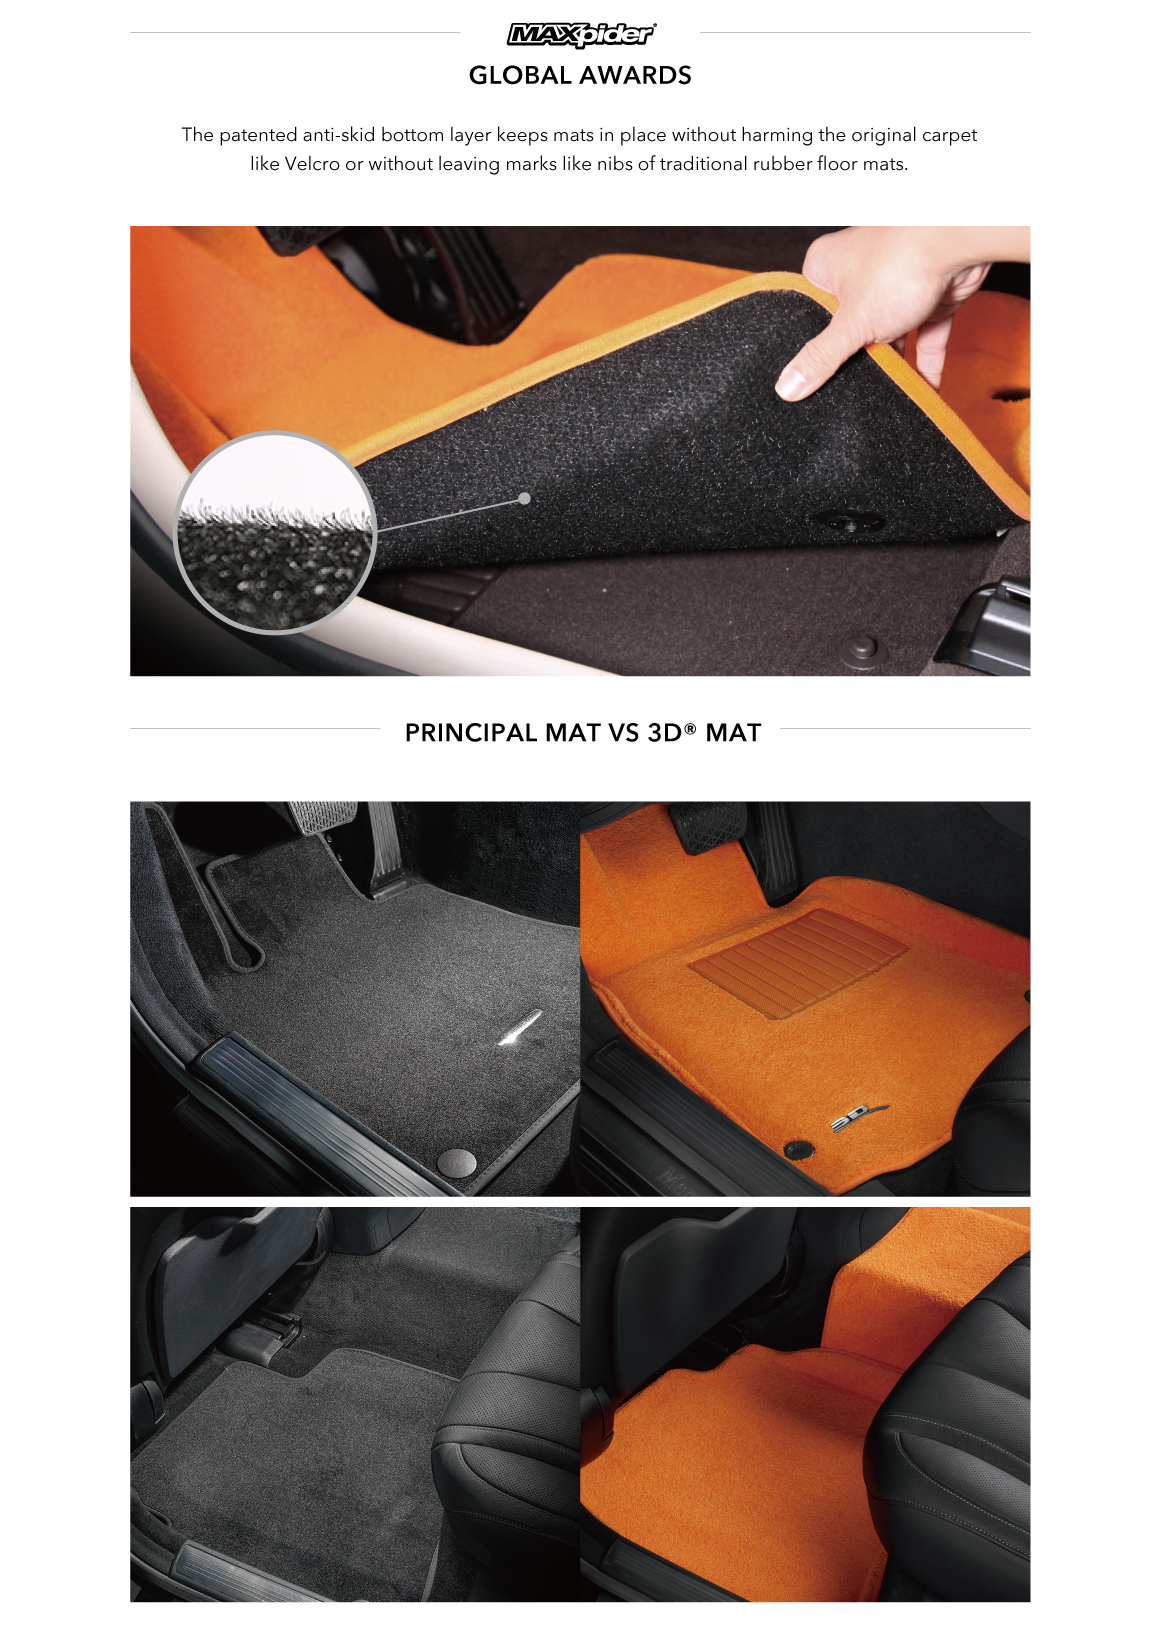 Mitsubishi Cedia Award Winning Car Floor Mats